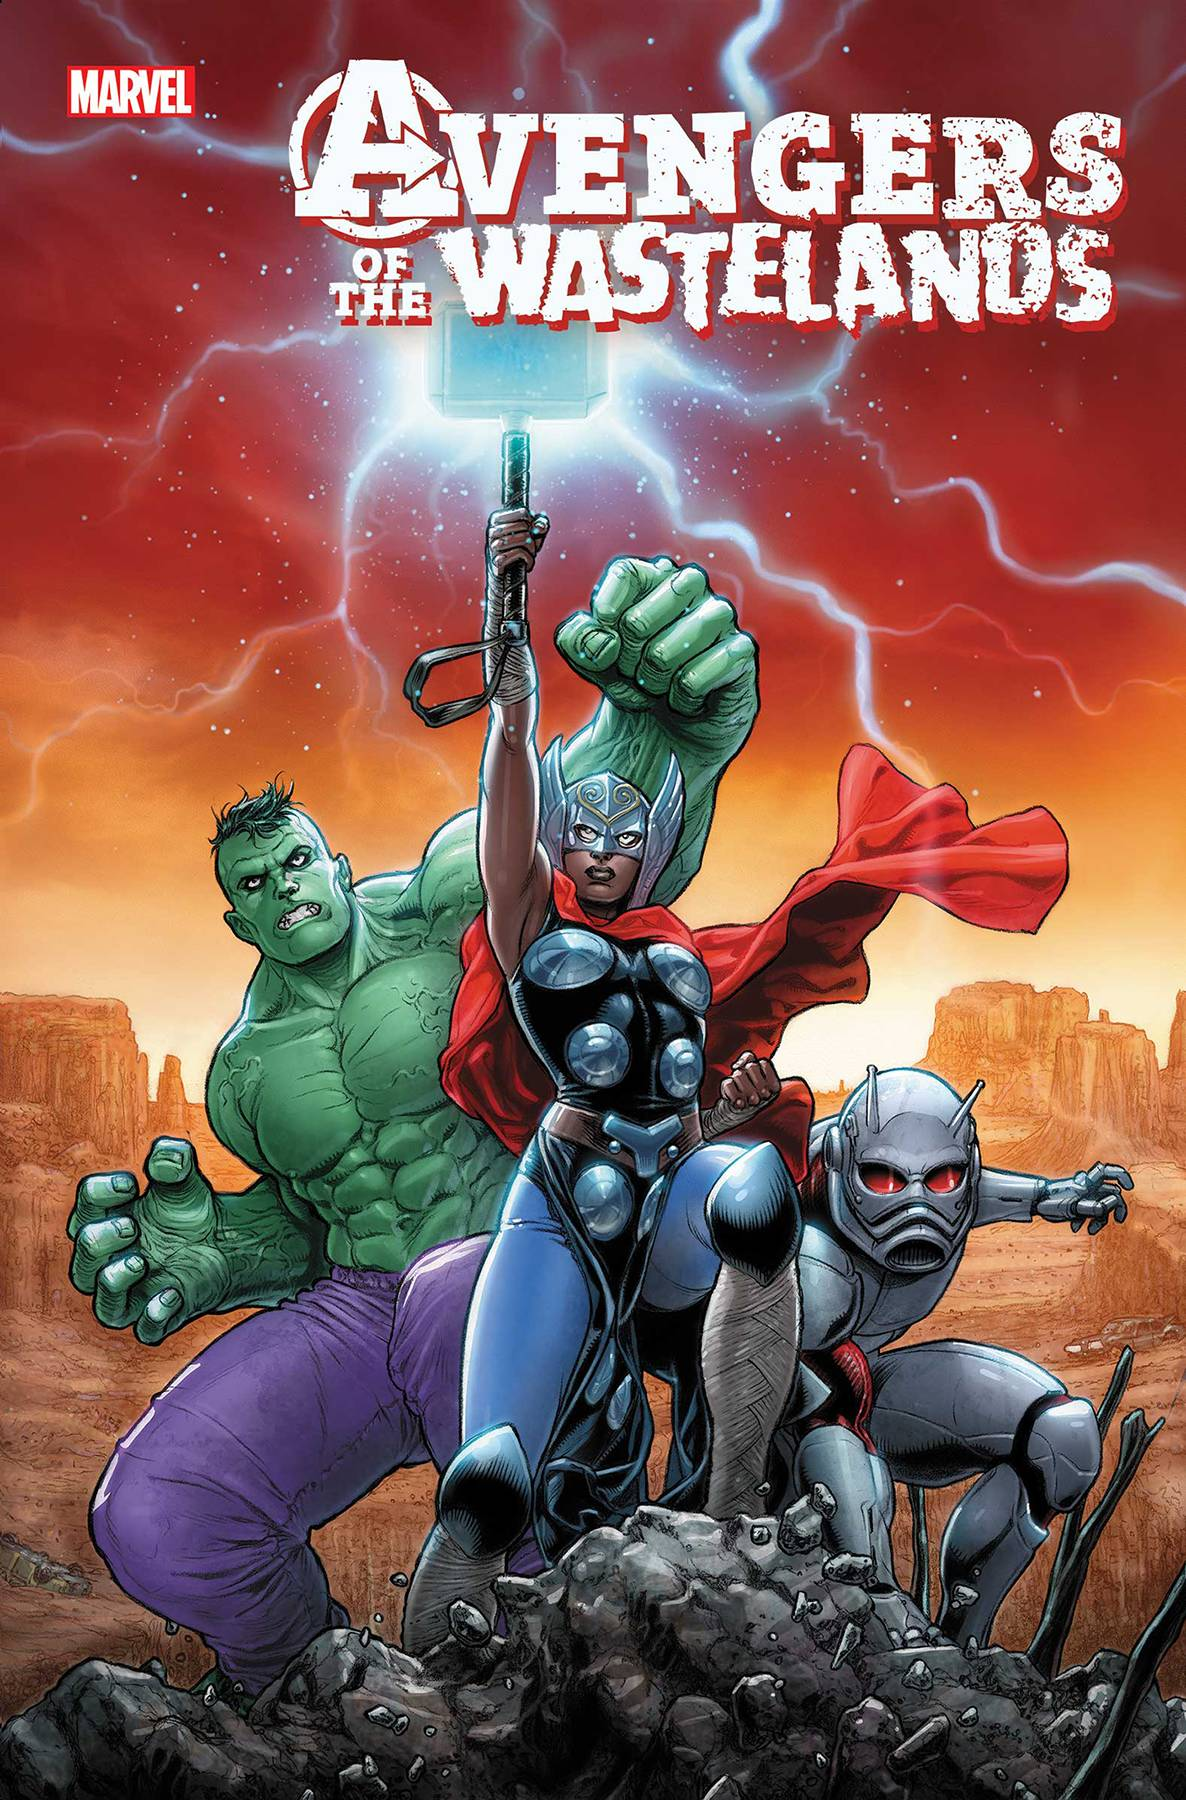 Avengers of the Wasteland #1